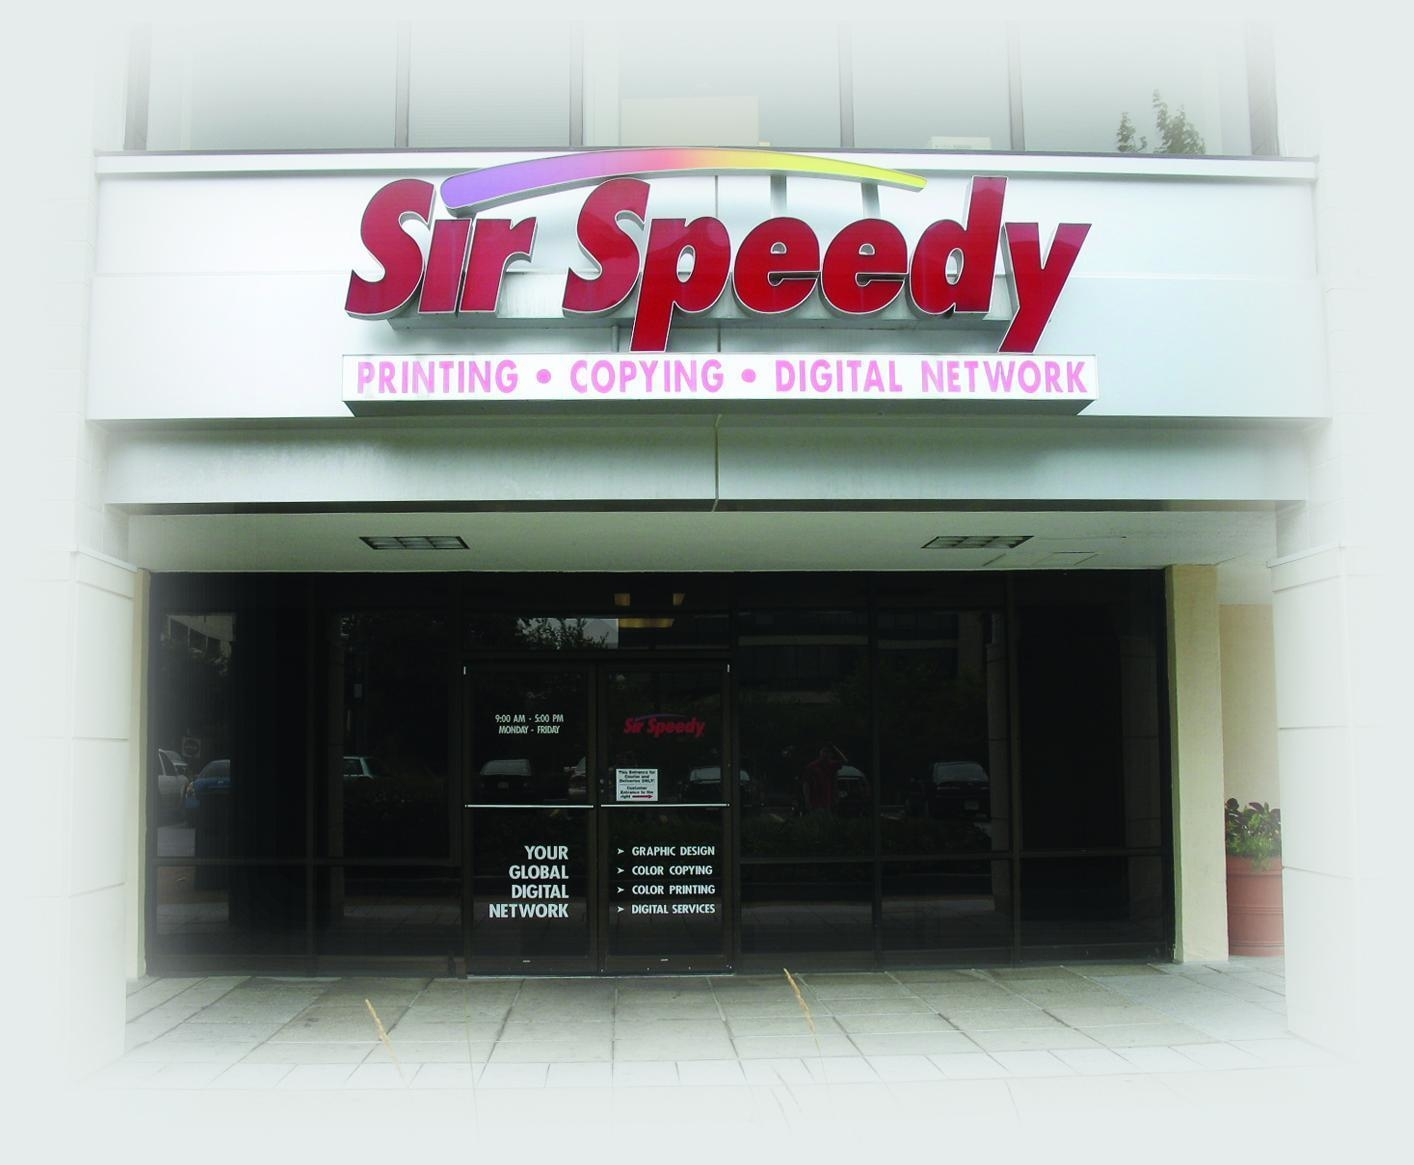 Sir Speedy Vienna - Printing & Marketing Services - ad image